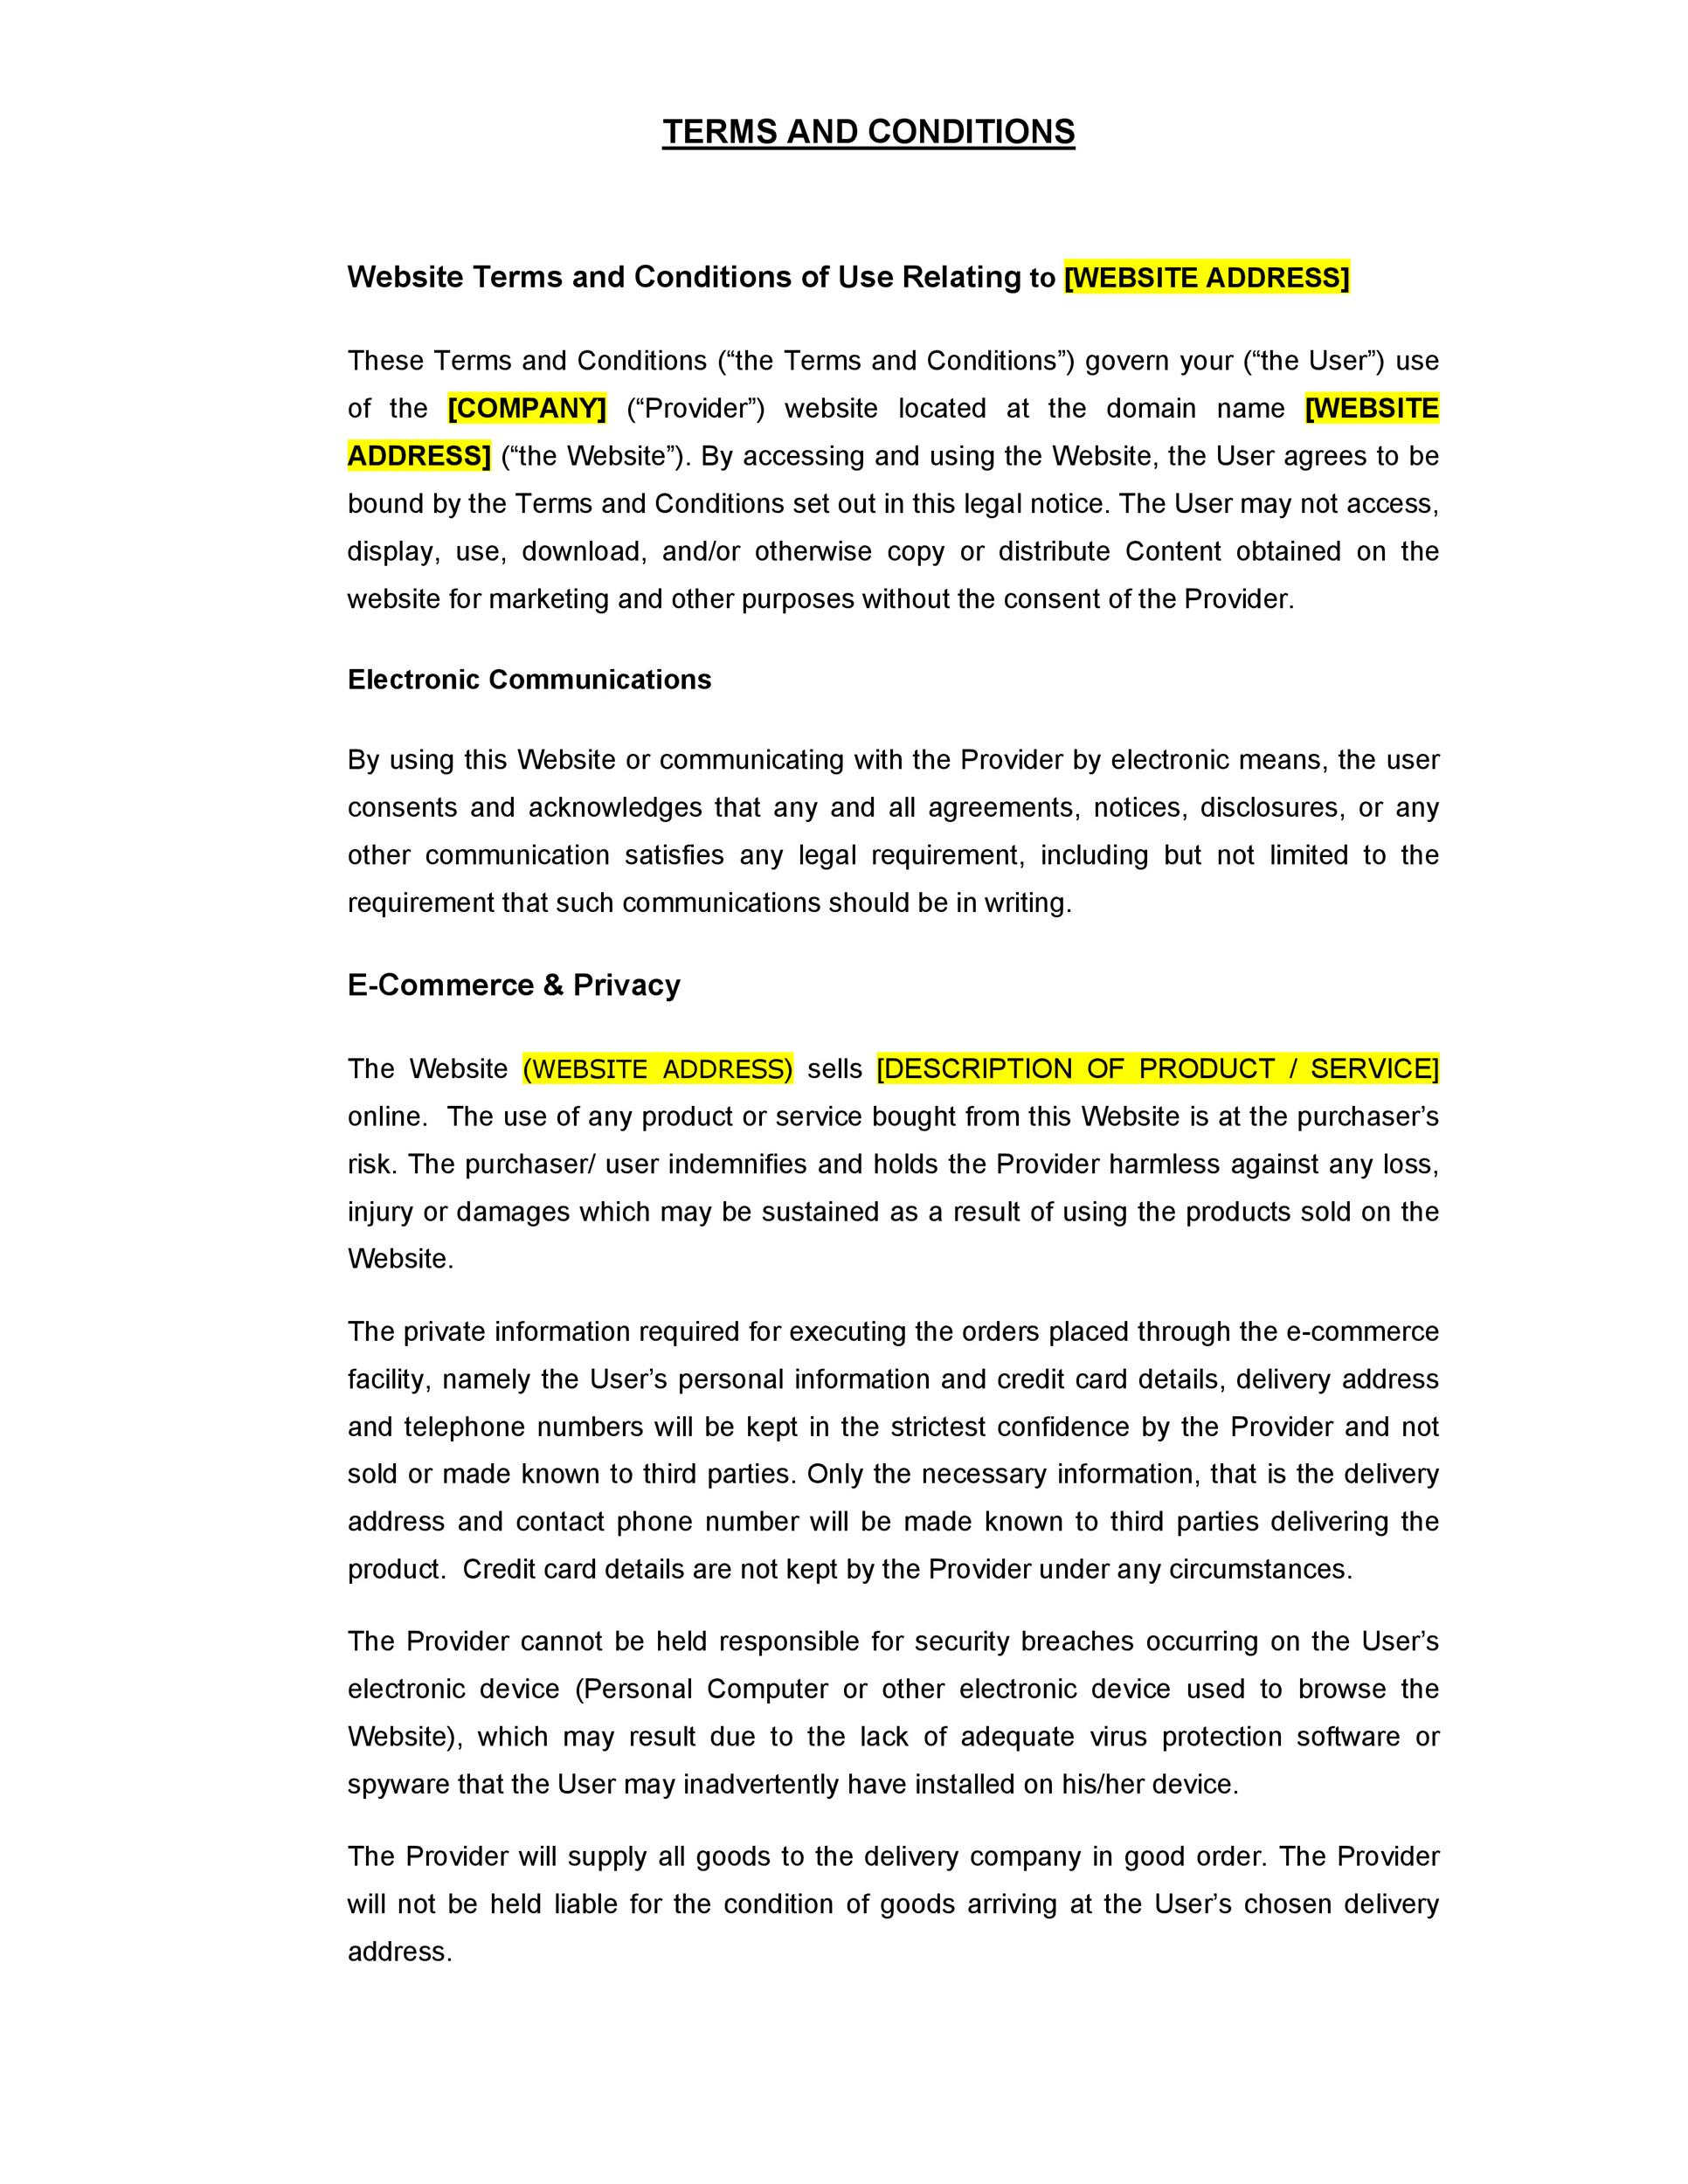 Free terms and conditions template 16